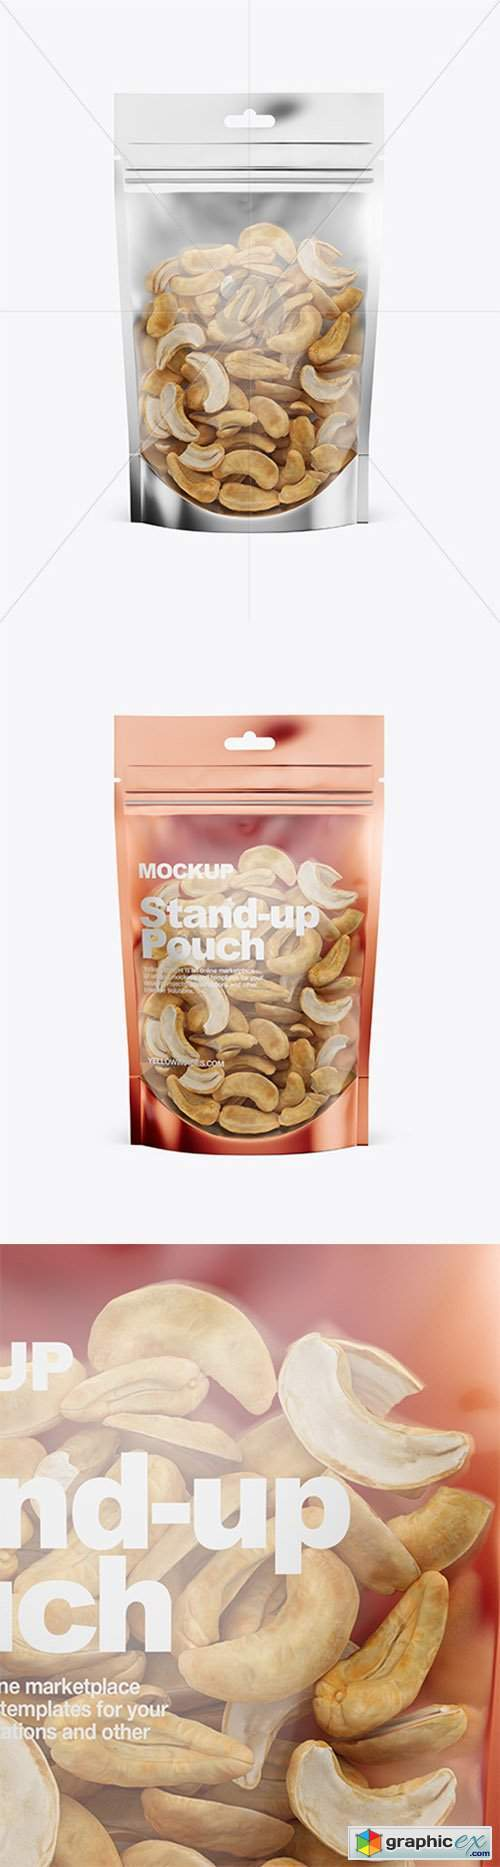 Glossy Transparent Stand-Up Pouch W/ Cashew Nuts Mockup - Front View